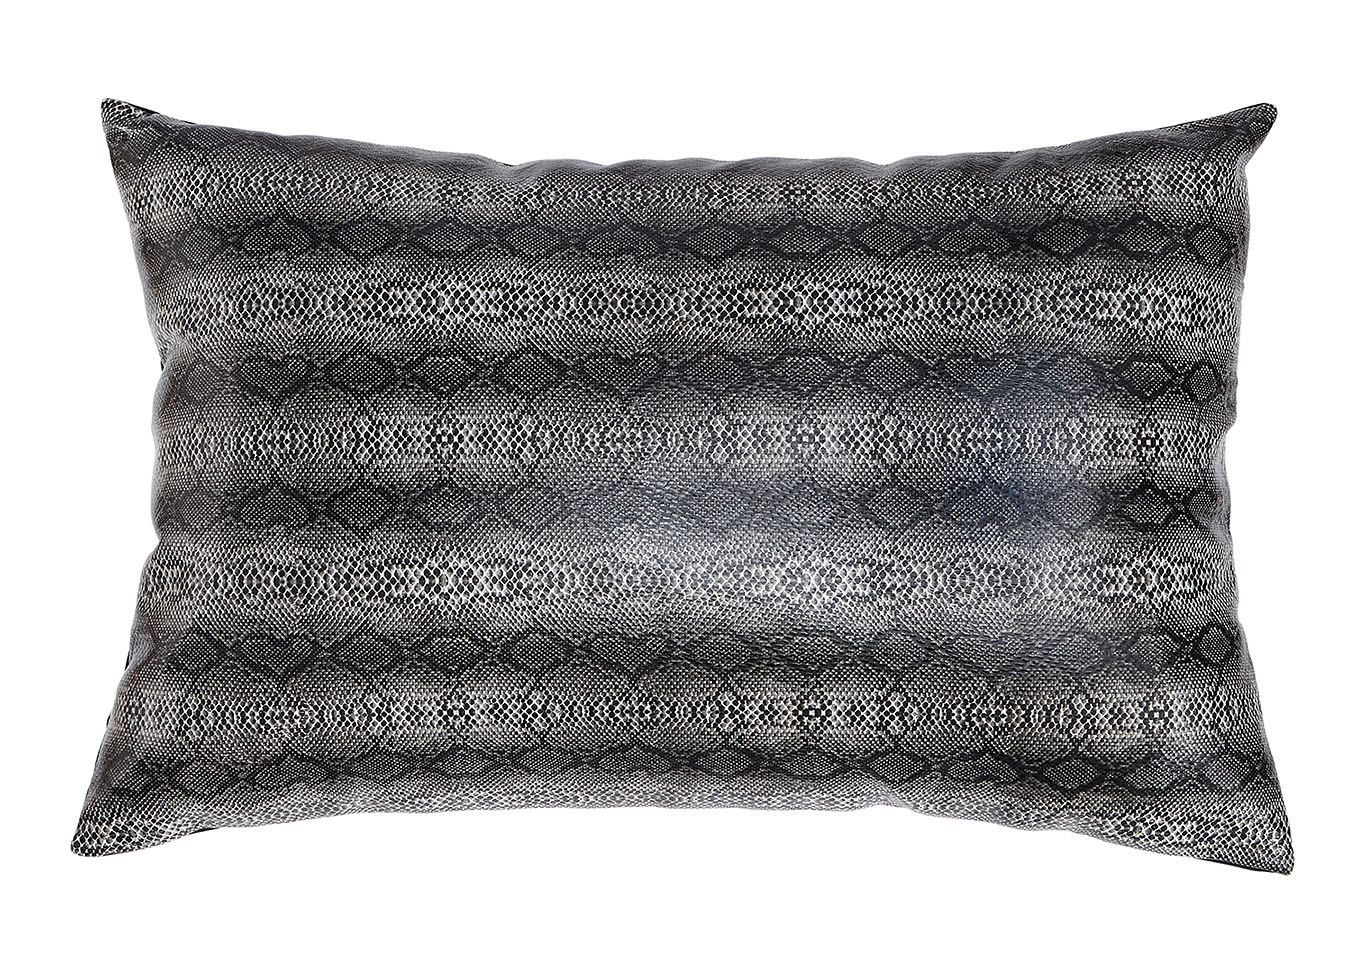 Savier Black/Gray Pillow (Set of 4),Signature Design By Ashley